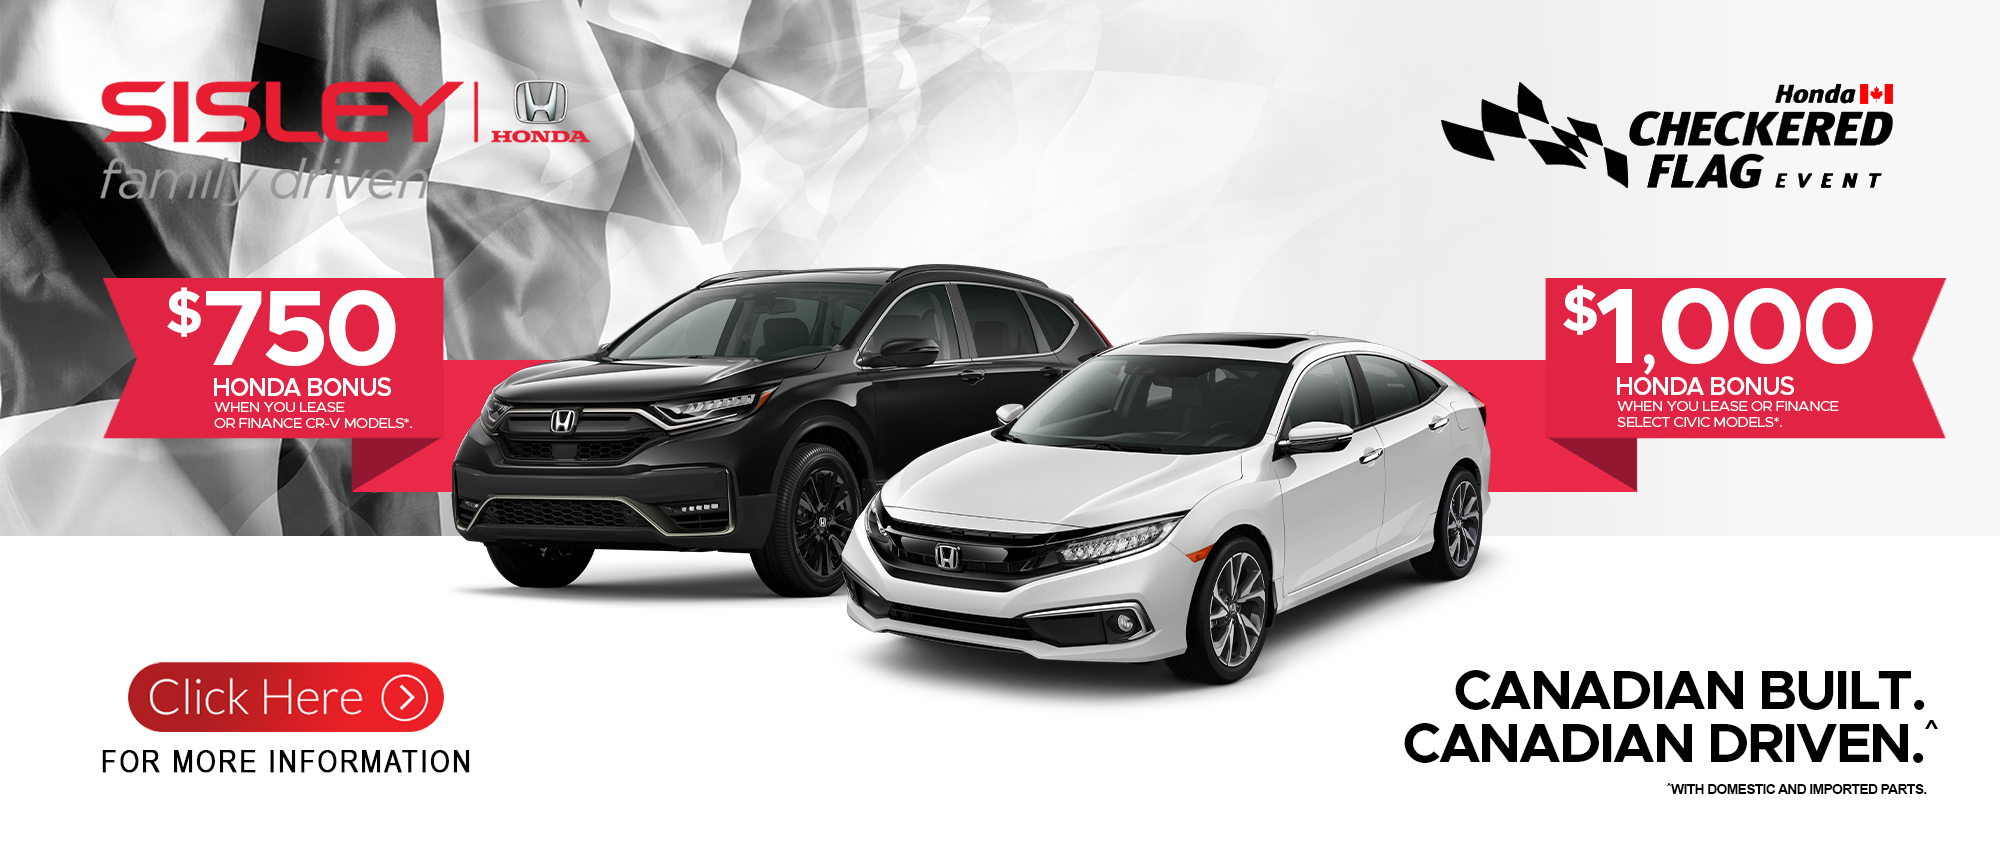 View more information about Honda's current promotion!